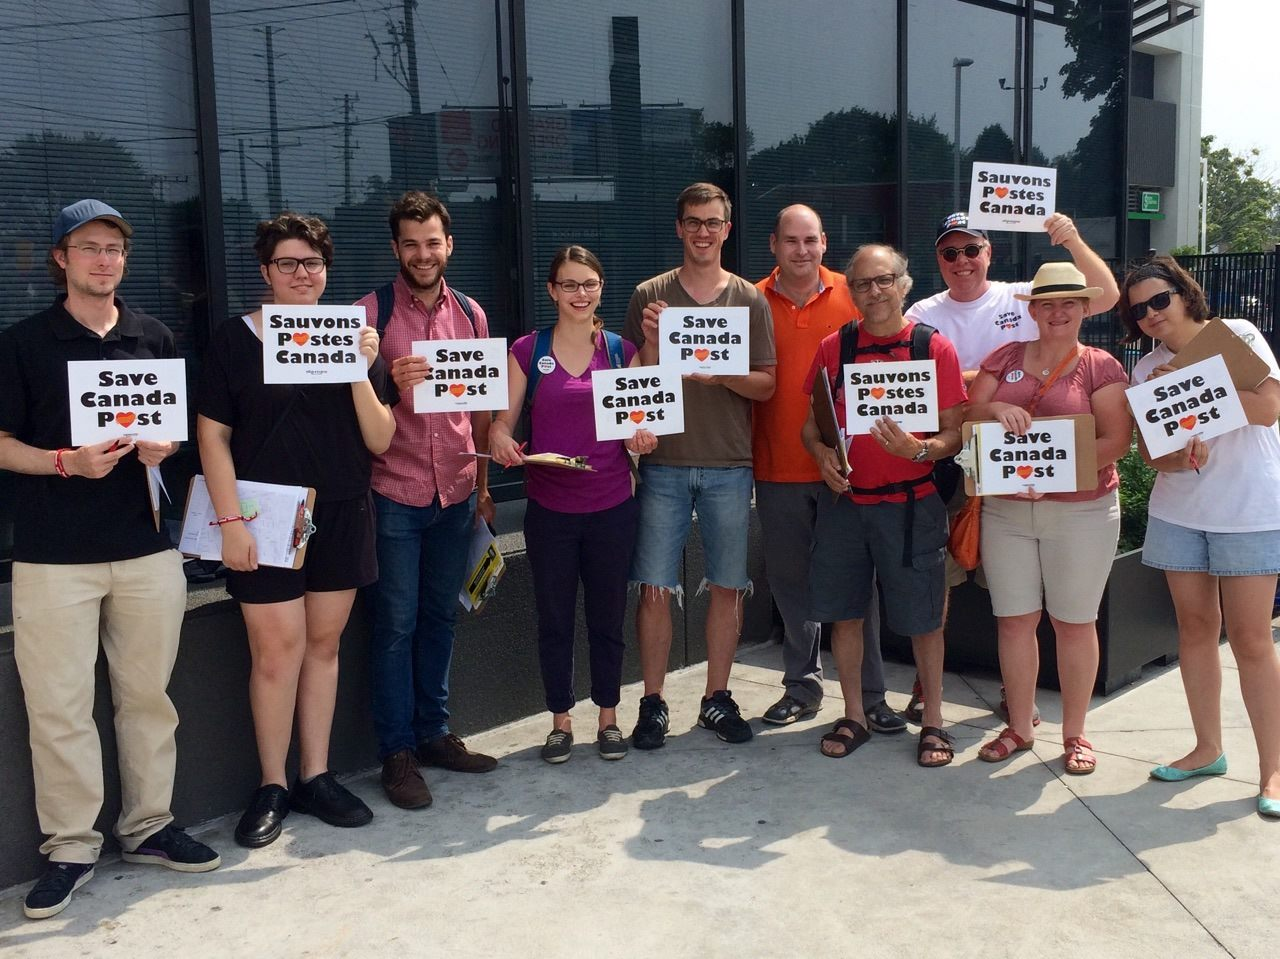 On July 11, members of the Toronto Local canvassed door-to-door